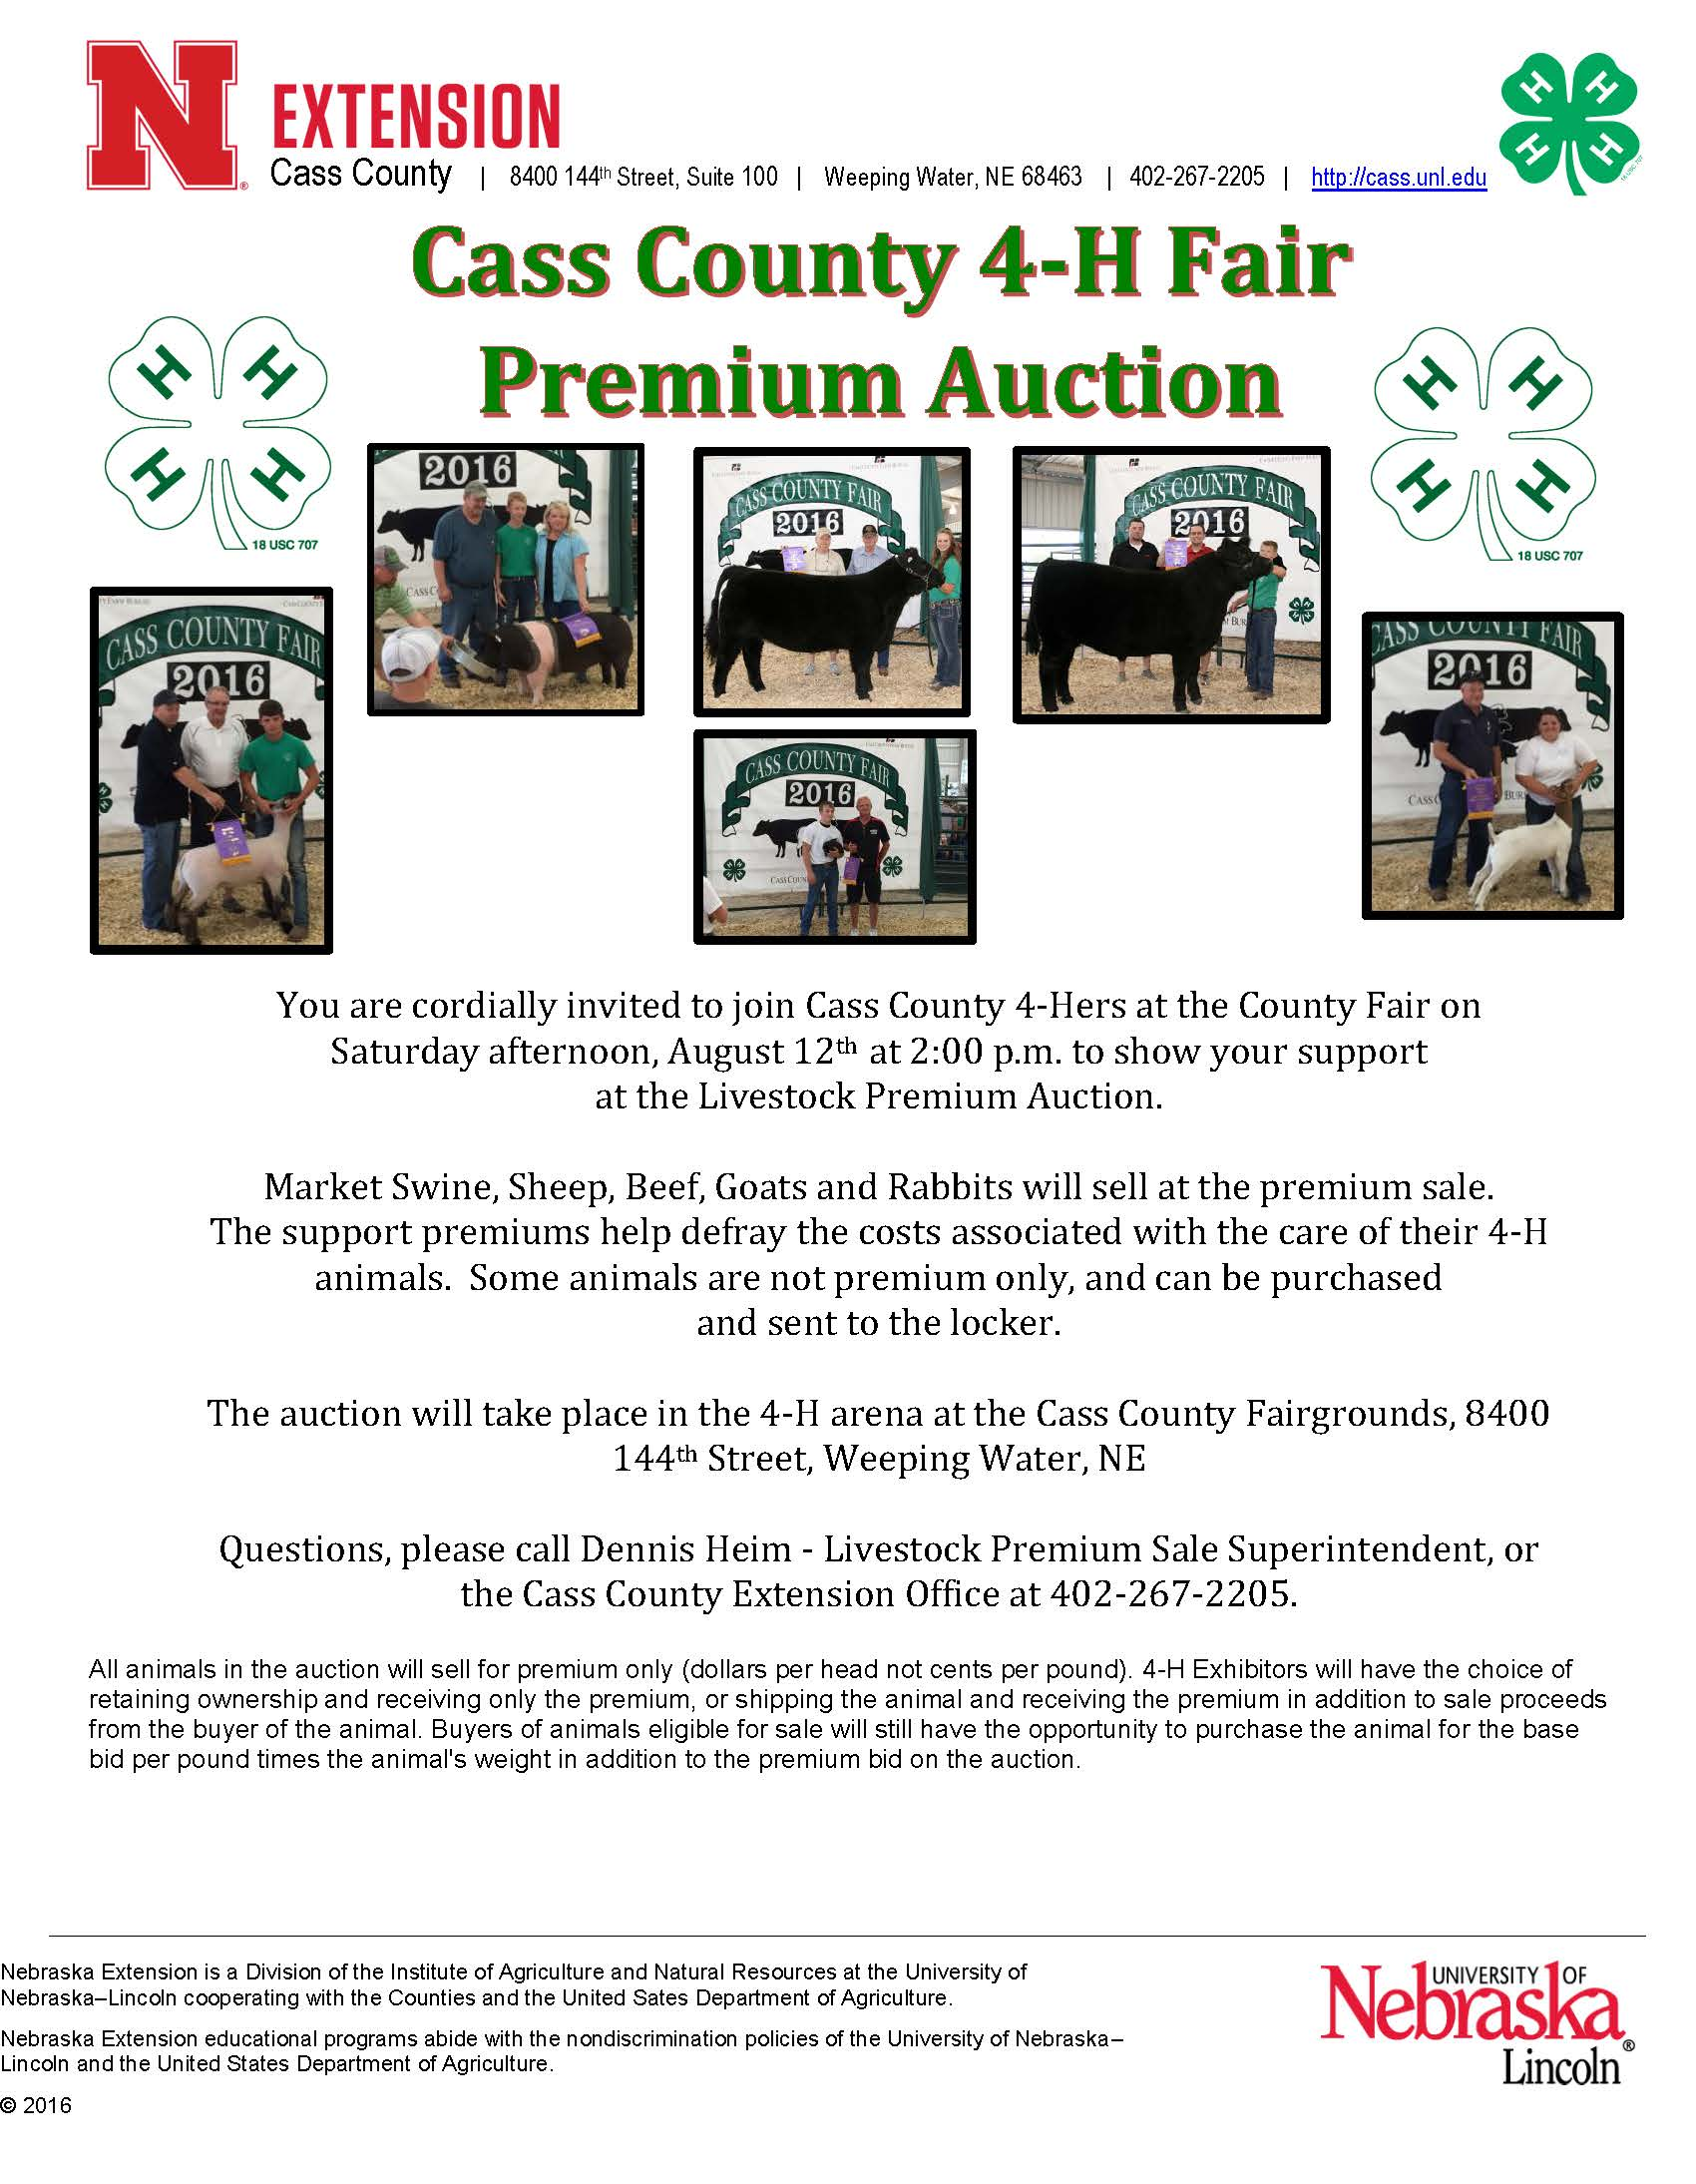 Livestock Auction flyer for 2017